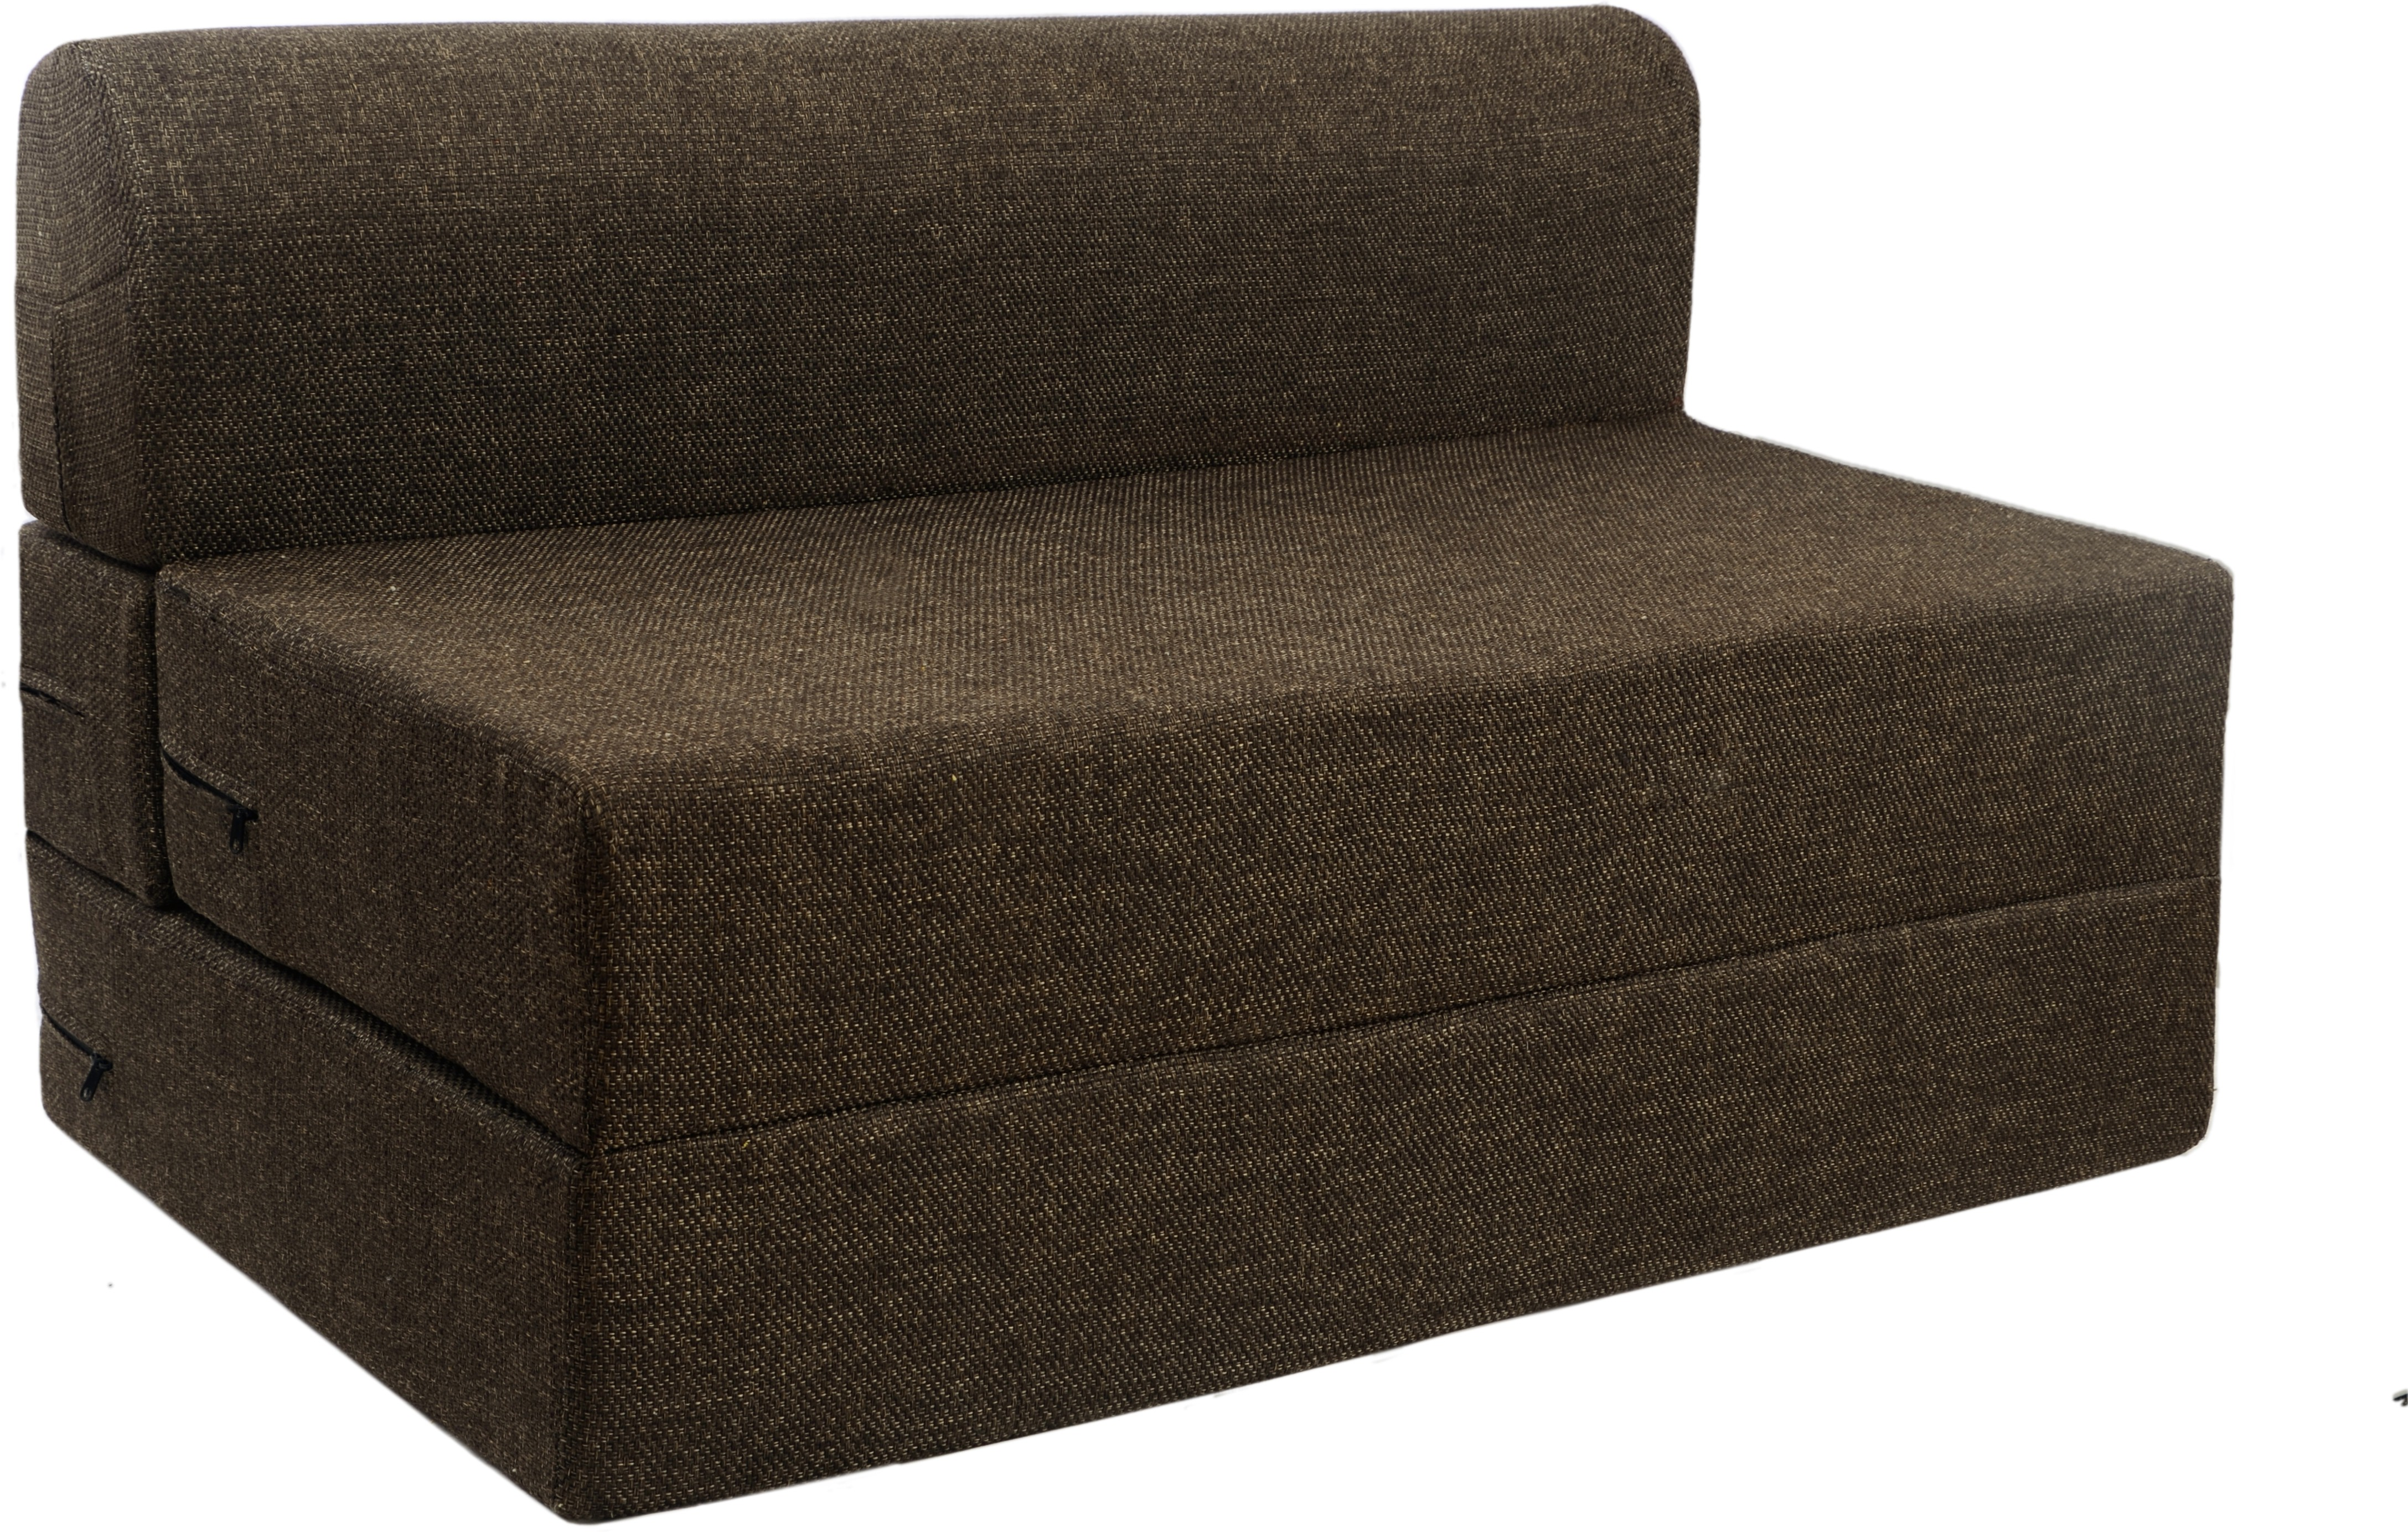 Springtek Sofa Cum Bed Foam Single Sofa Bed(Finish Color - Brown Mechanism Type - Fold Out)